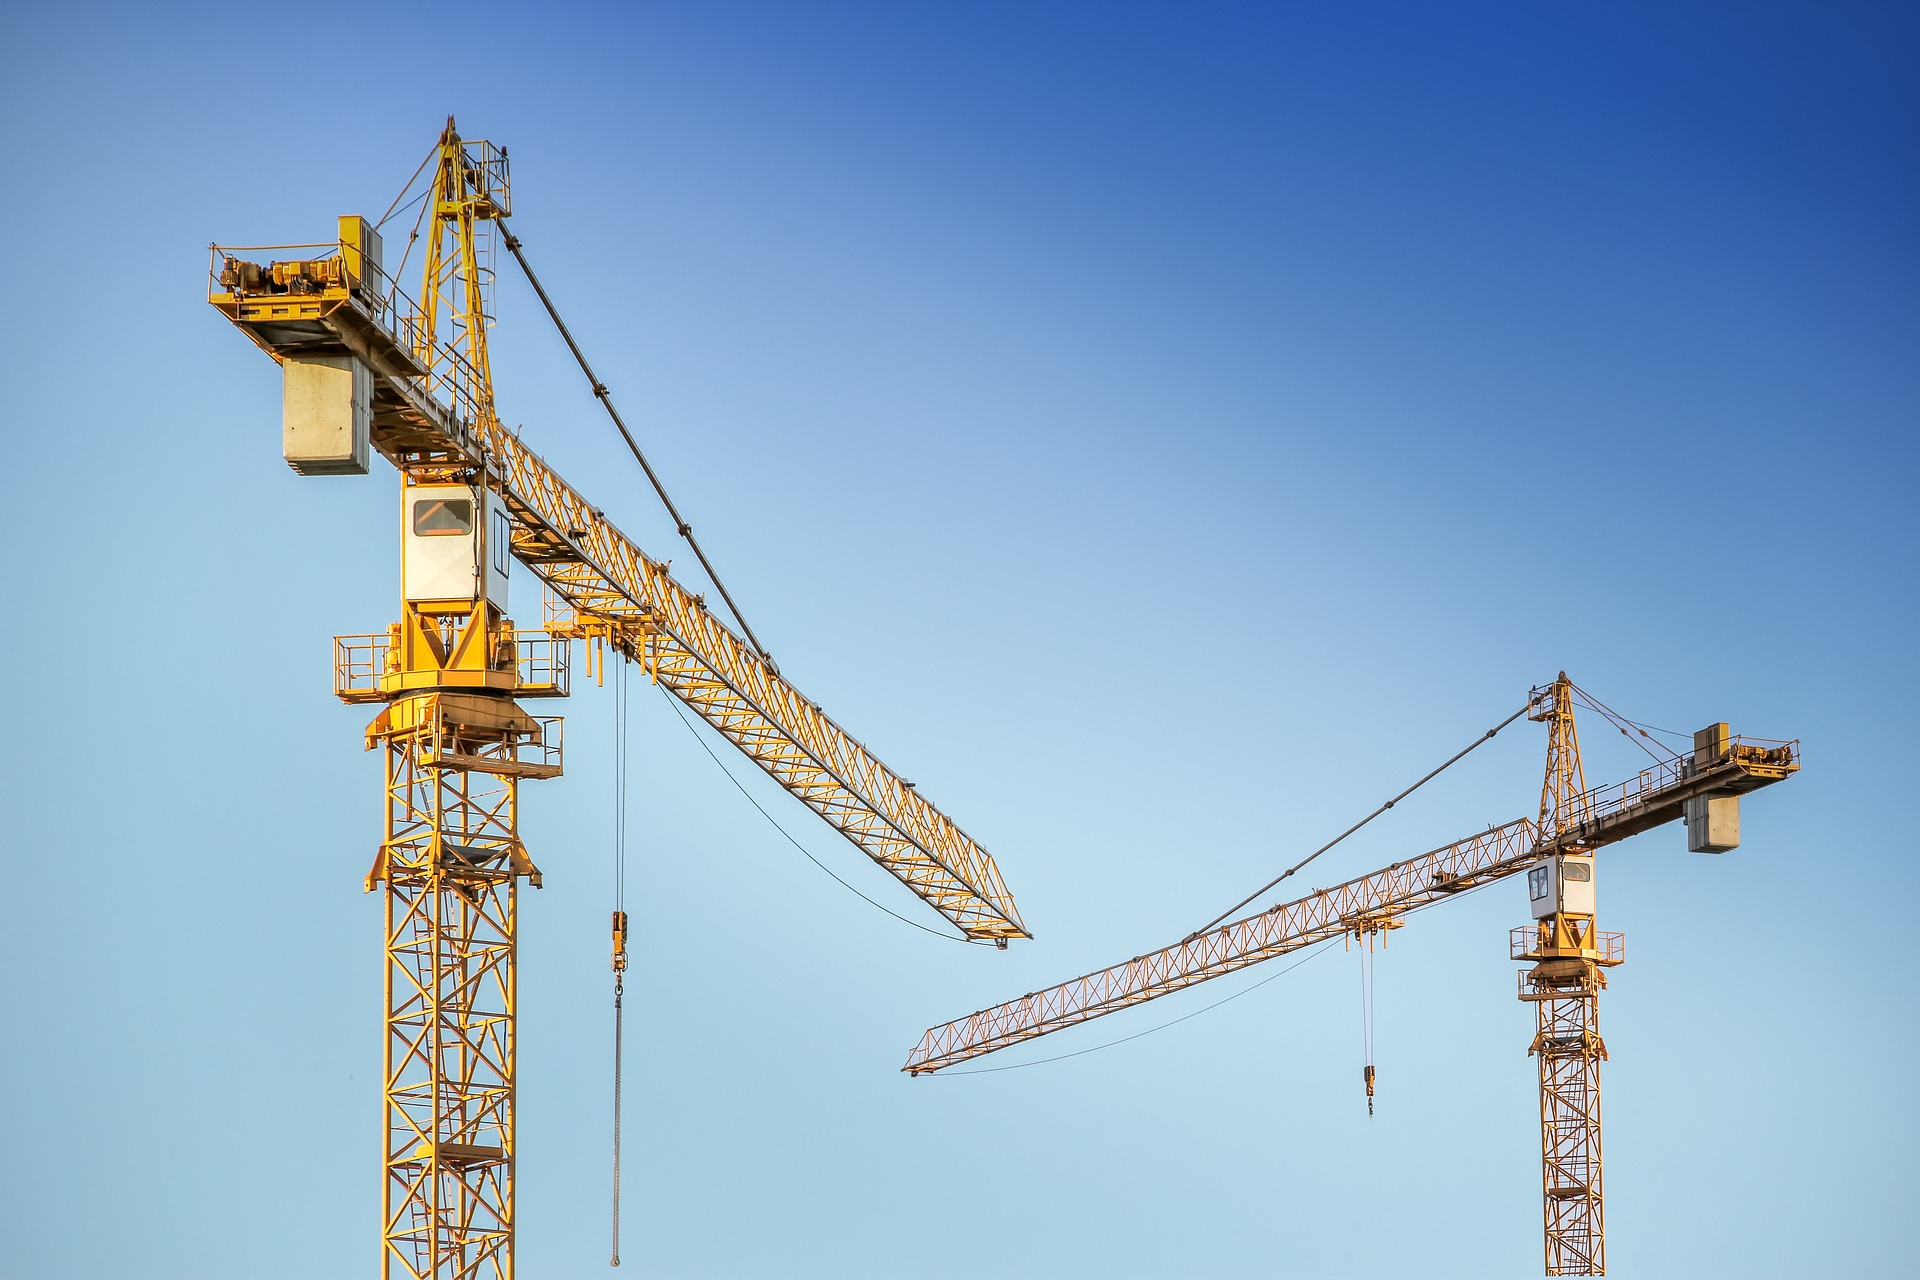 Cranes on site against a blue sky.